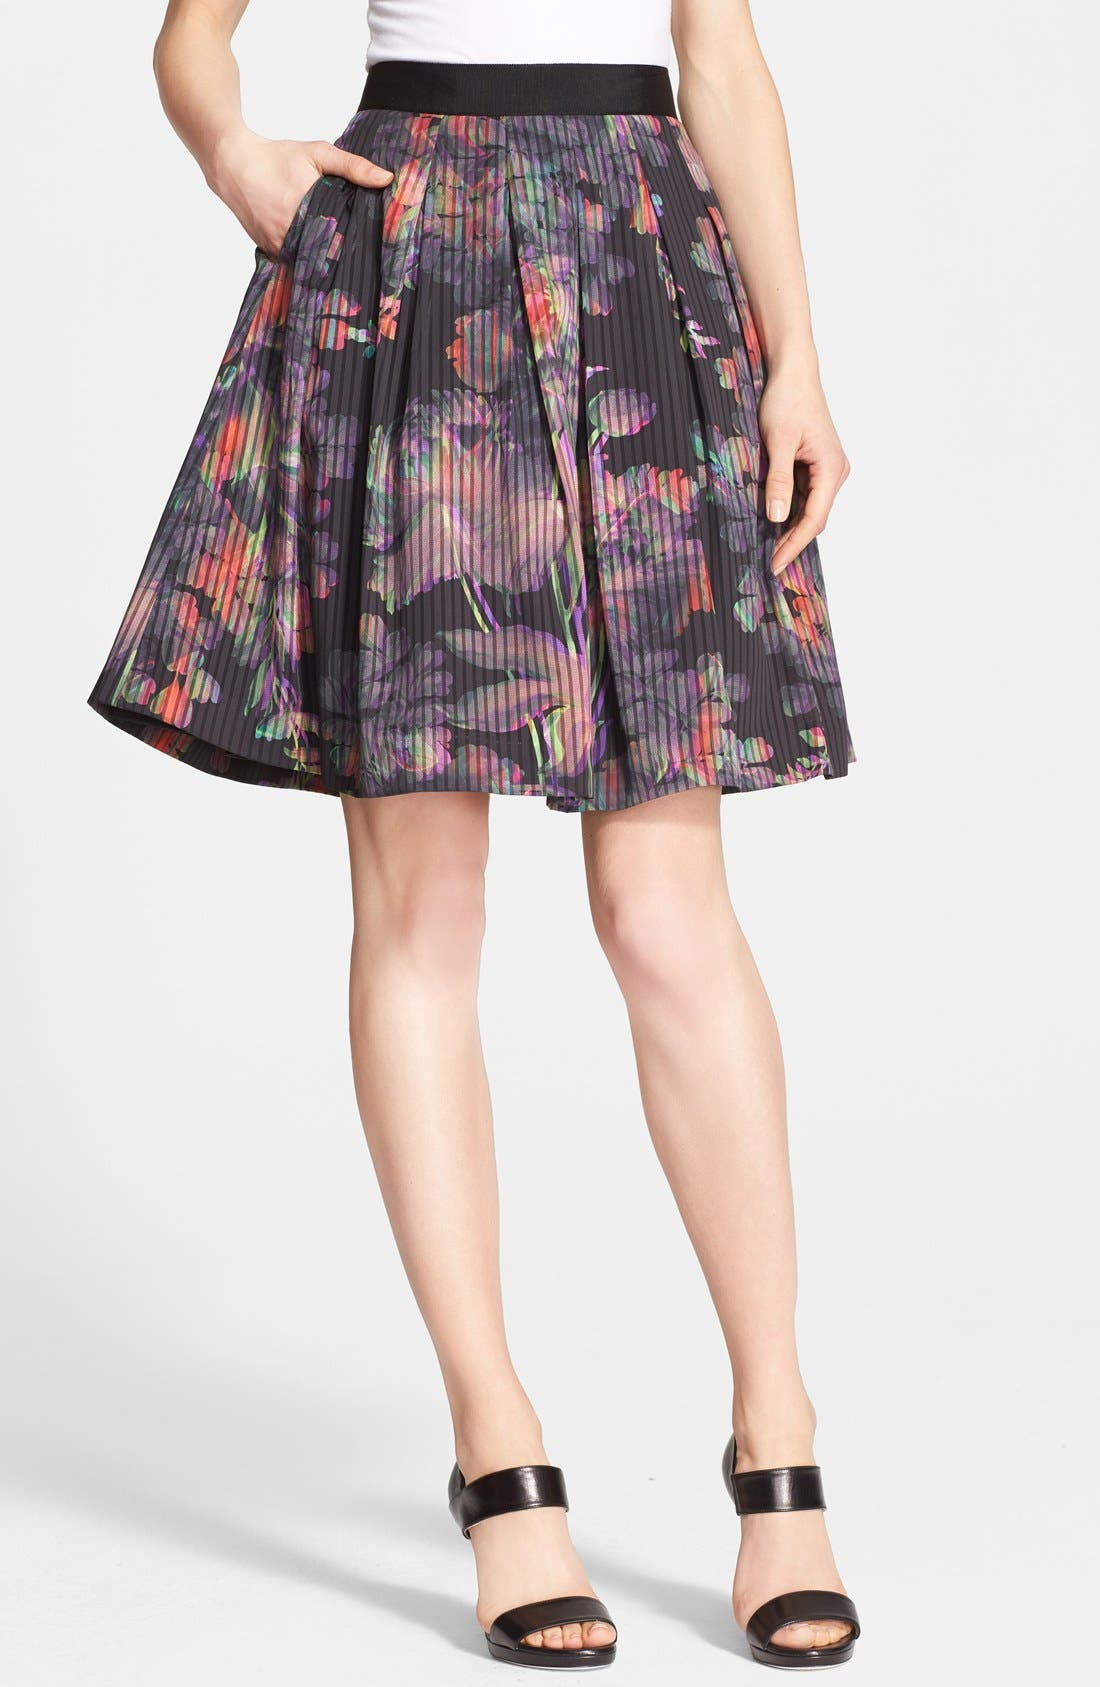 Alternate Image 1 Selected - Ted Baker London 'Jadzia Holographic Halftone' Print A-Line Skirt